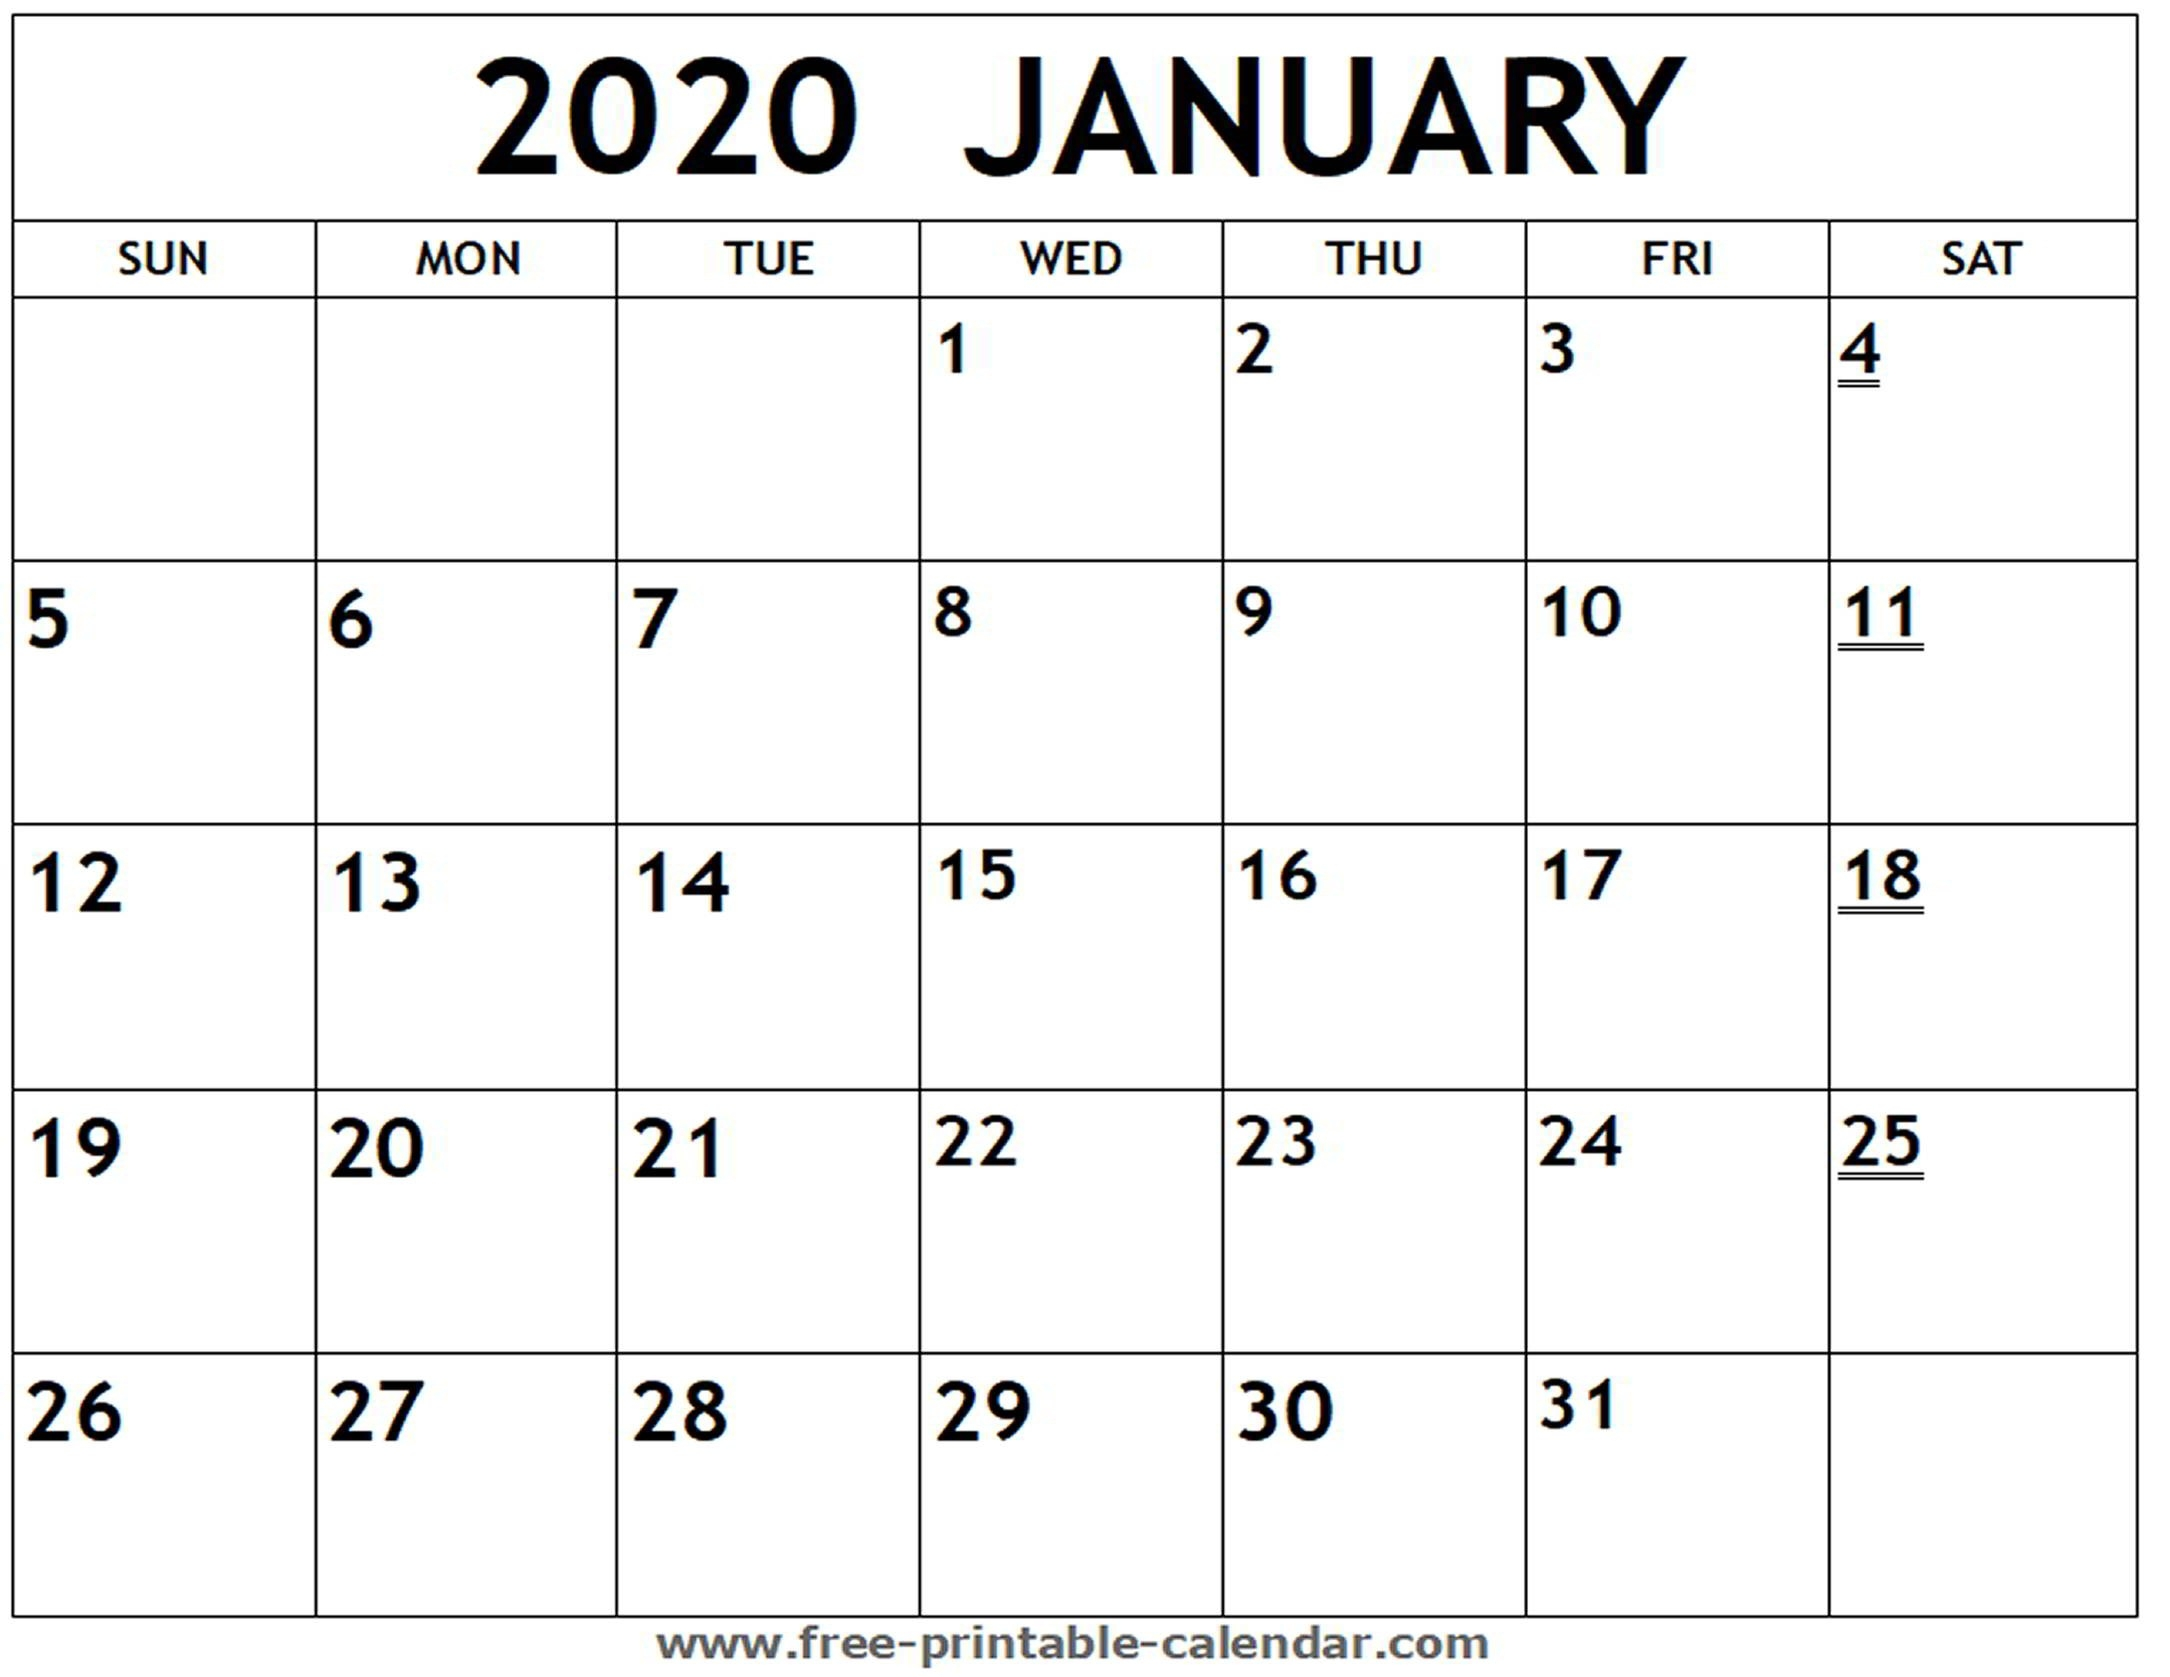 Printable 2020 January Calendar - Free-Printable-Calendar  Free Monthly Calendar Print Out 2020 With Holidays